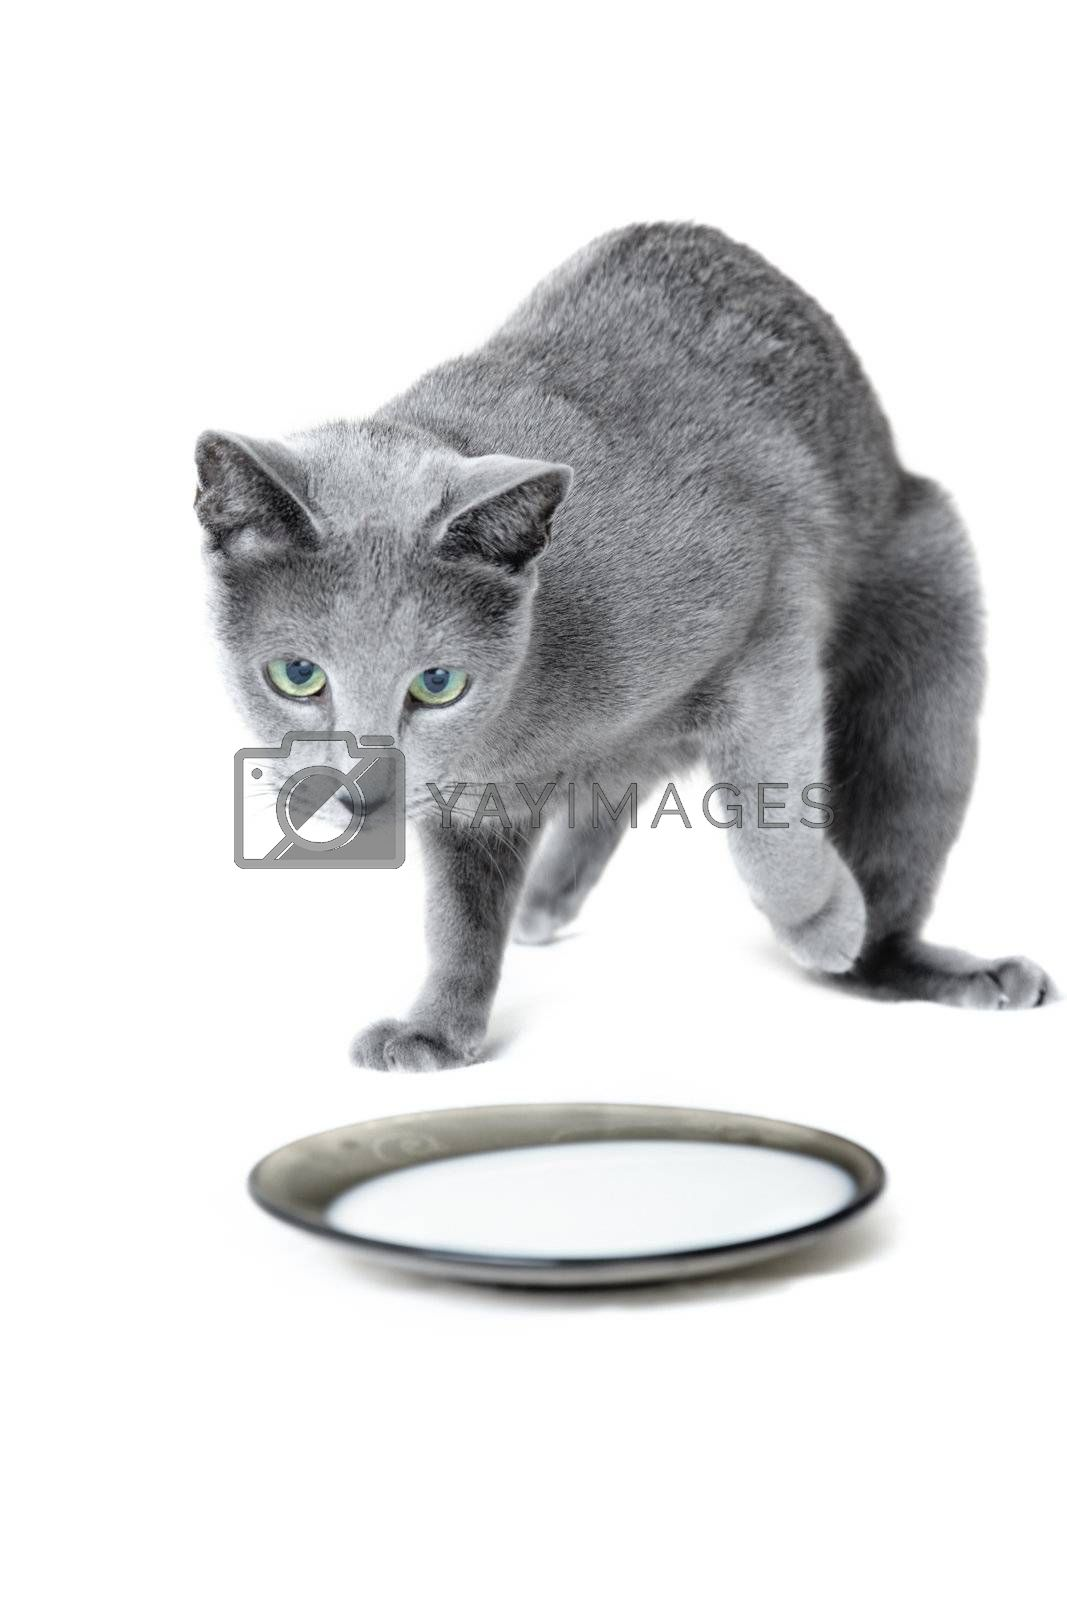 Russian blue cat near the plate with milk on a white background